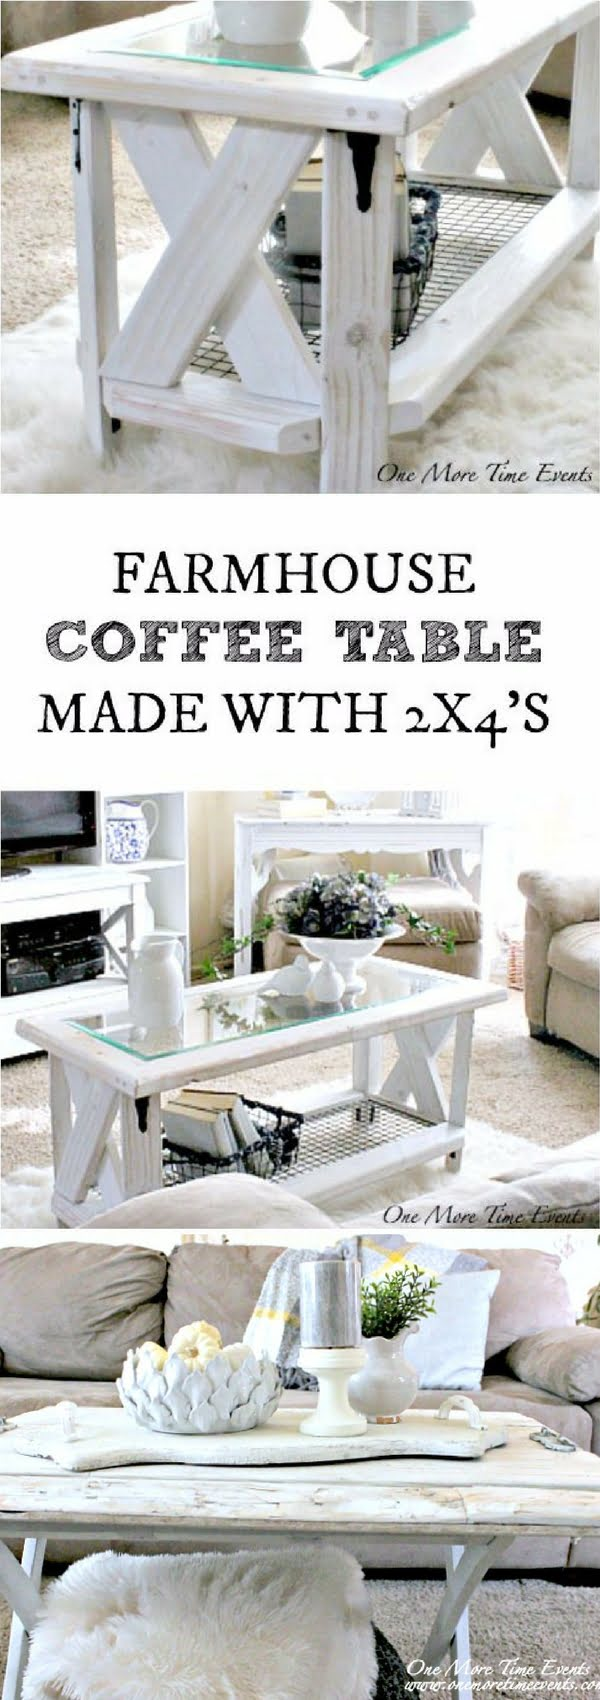 20 Crafty 2x4 DIY Projects That You Can Easily Make - Check out how to make a DIY farmhouse coffee table from 2x4s